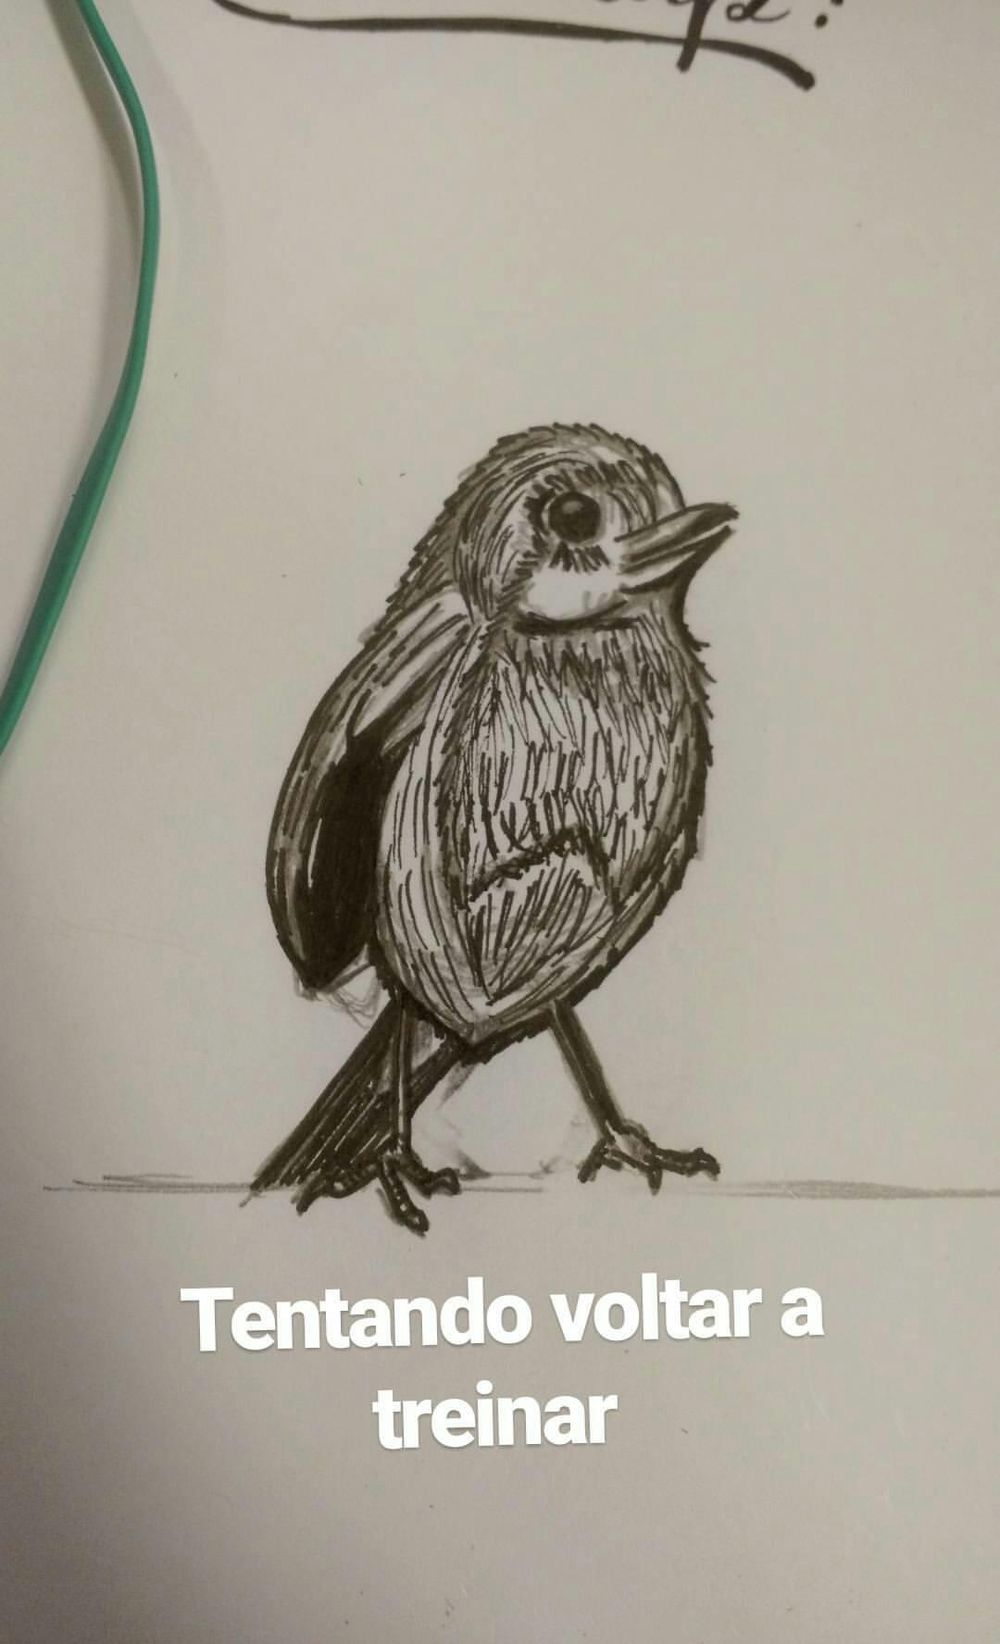 training draw with a different bird  - image 2 - student project